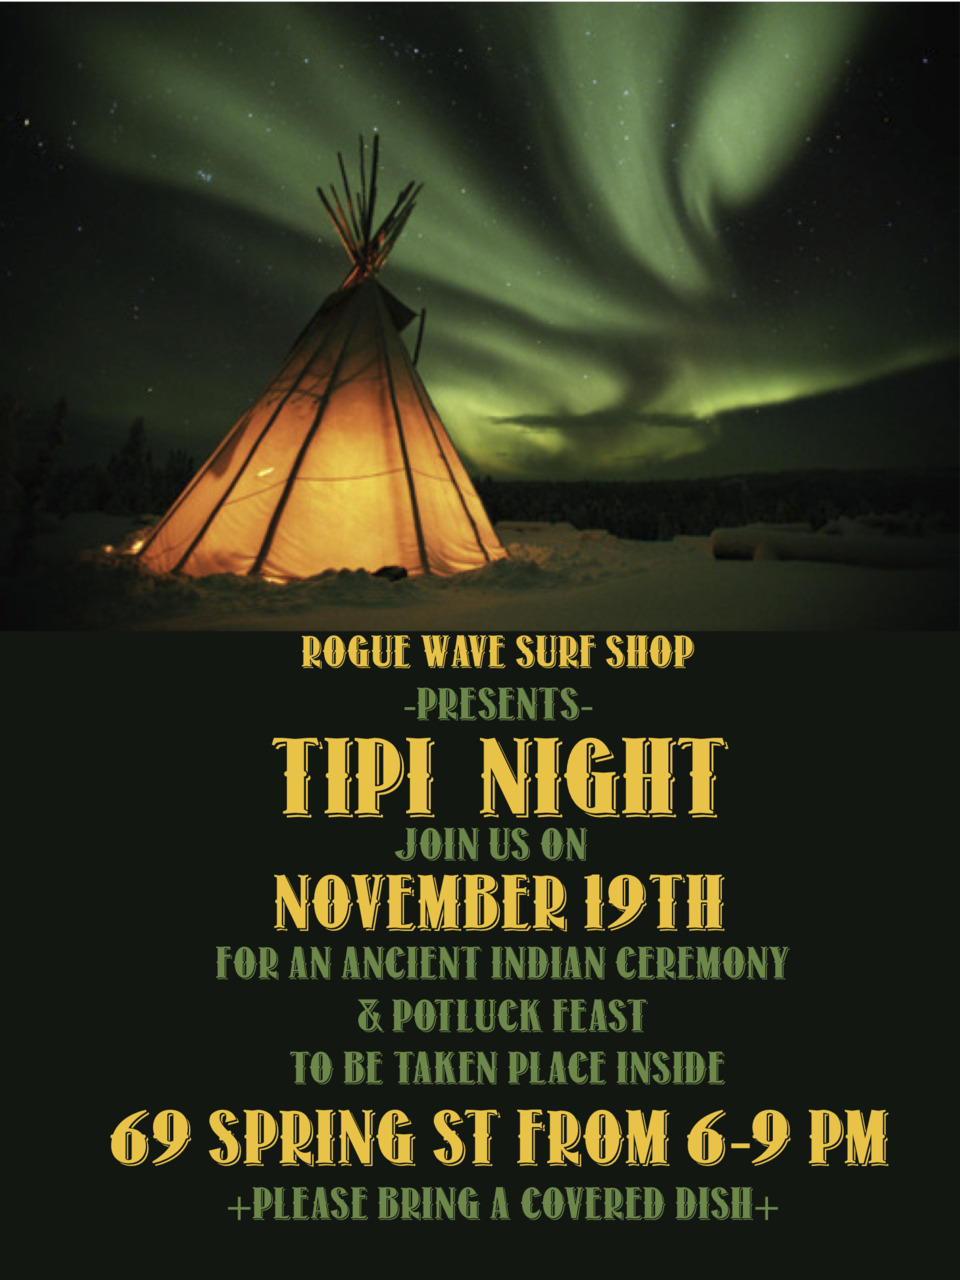 tipi night. nov.19th @roguewavess b there.